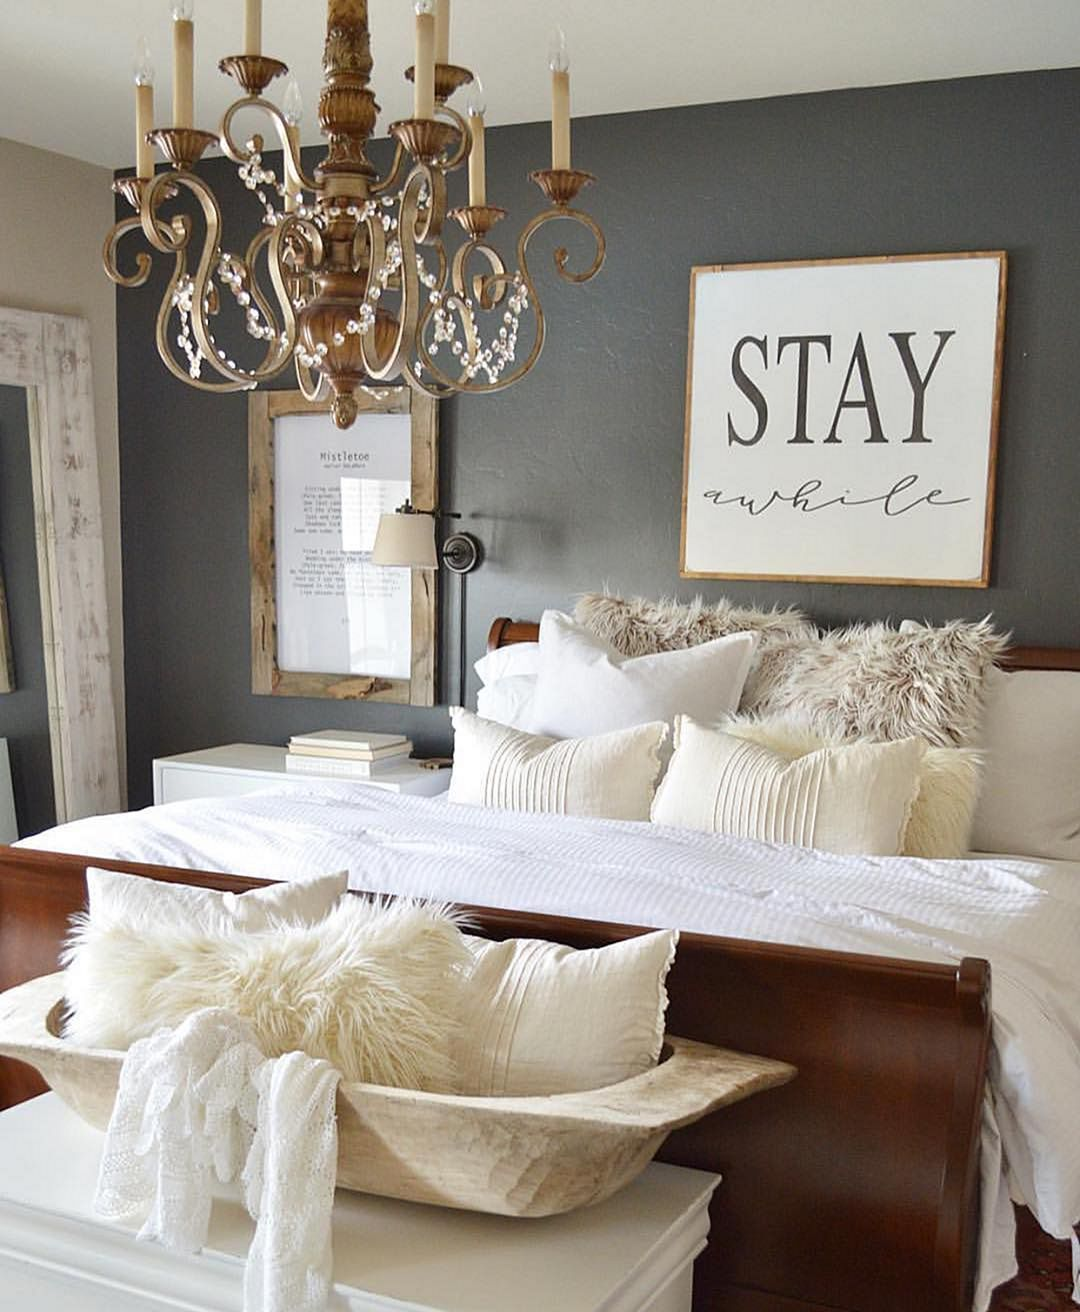 Guest Bedroom Designs Simple The Best 57 Cozy Farmhouse Guest Bedroom Design Ideas To Make Inspiration Design